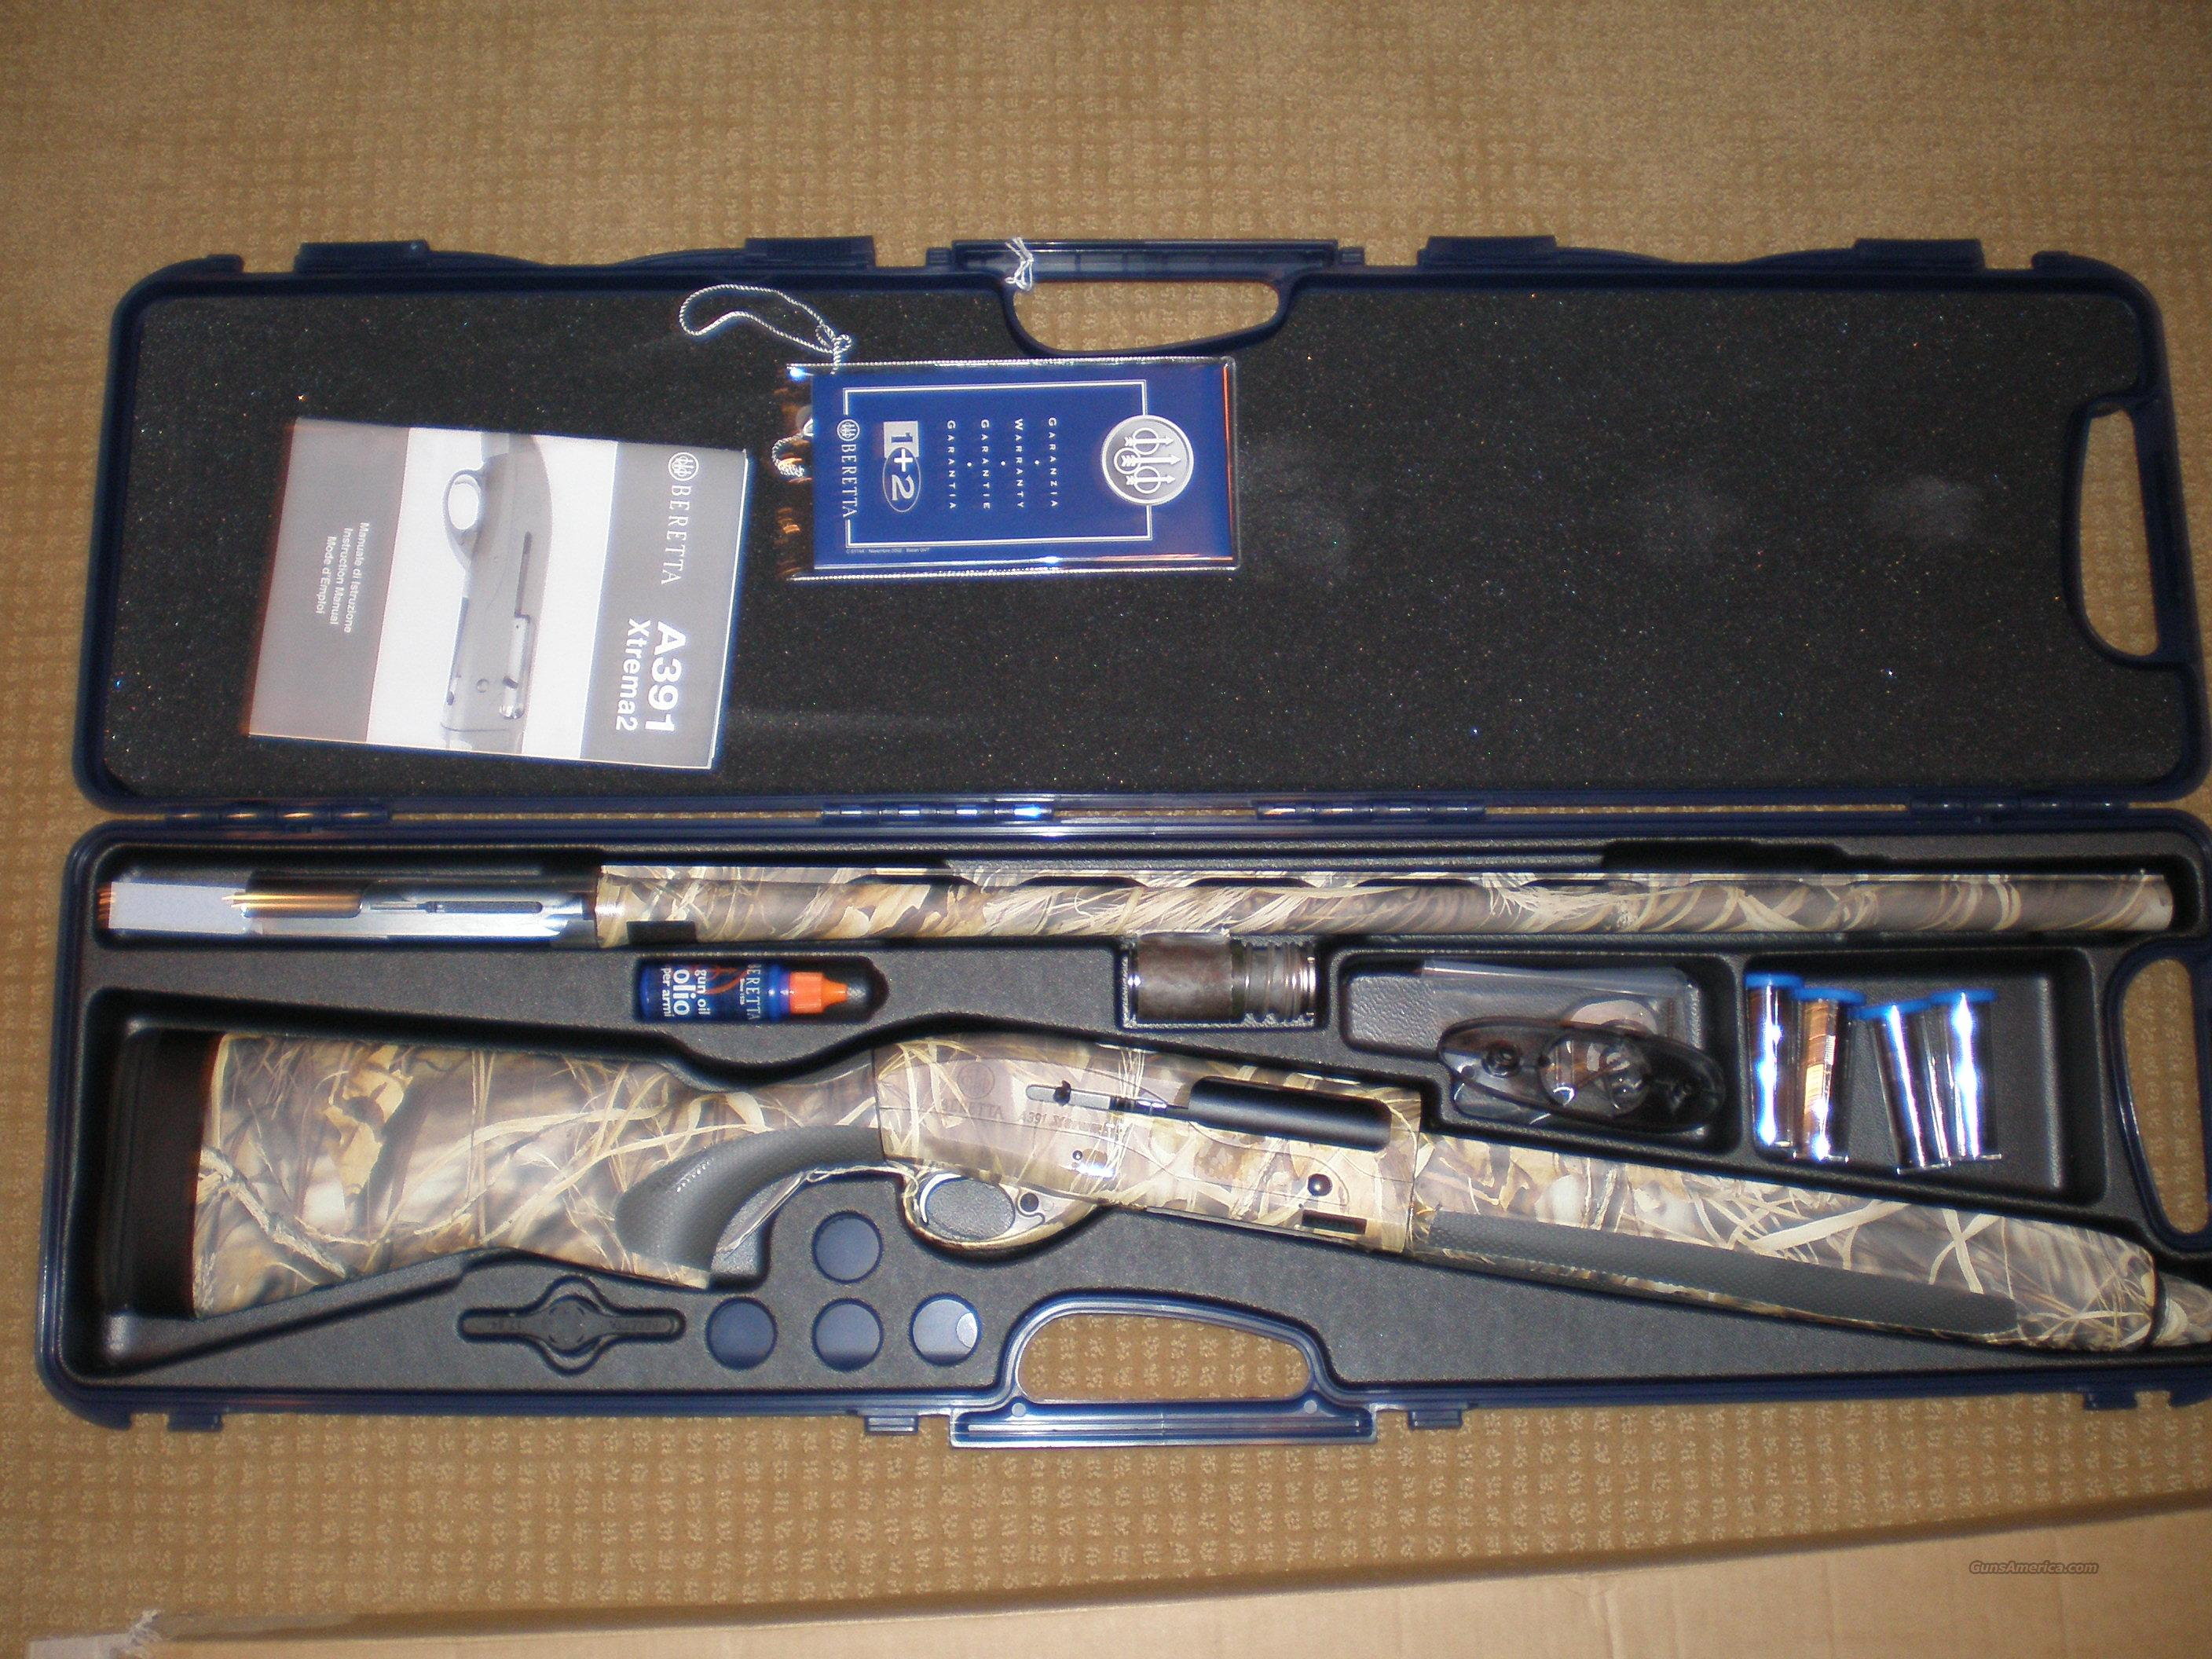 Beretta A391 Xtrema2 Camo Max - 4 12G/28/OBF Shotgun - NEW IN BOX  Guns > Shotguns > Beretta Shotguns > Autoloaders > Hunting